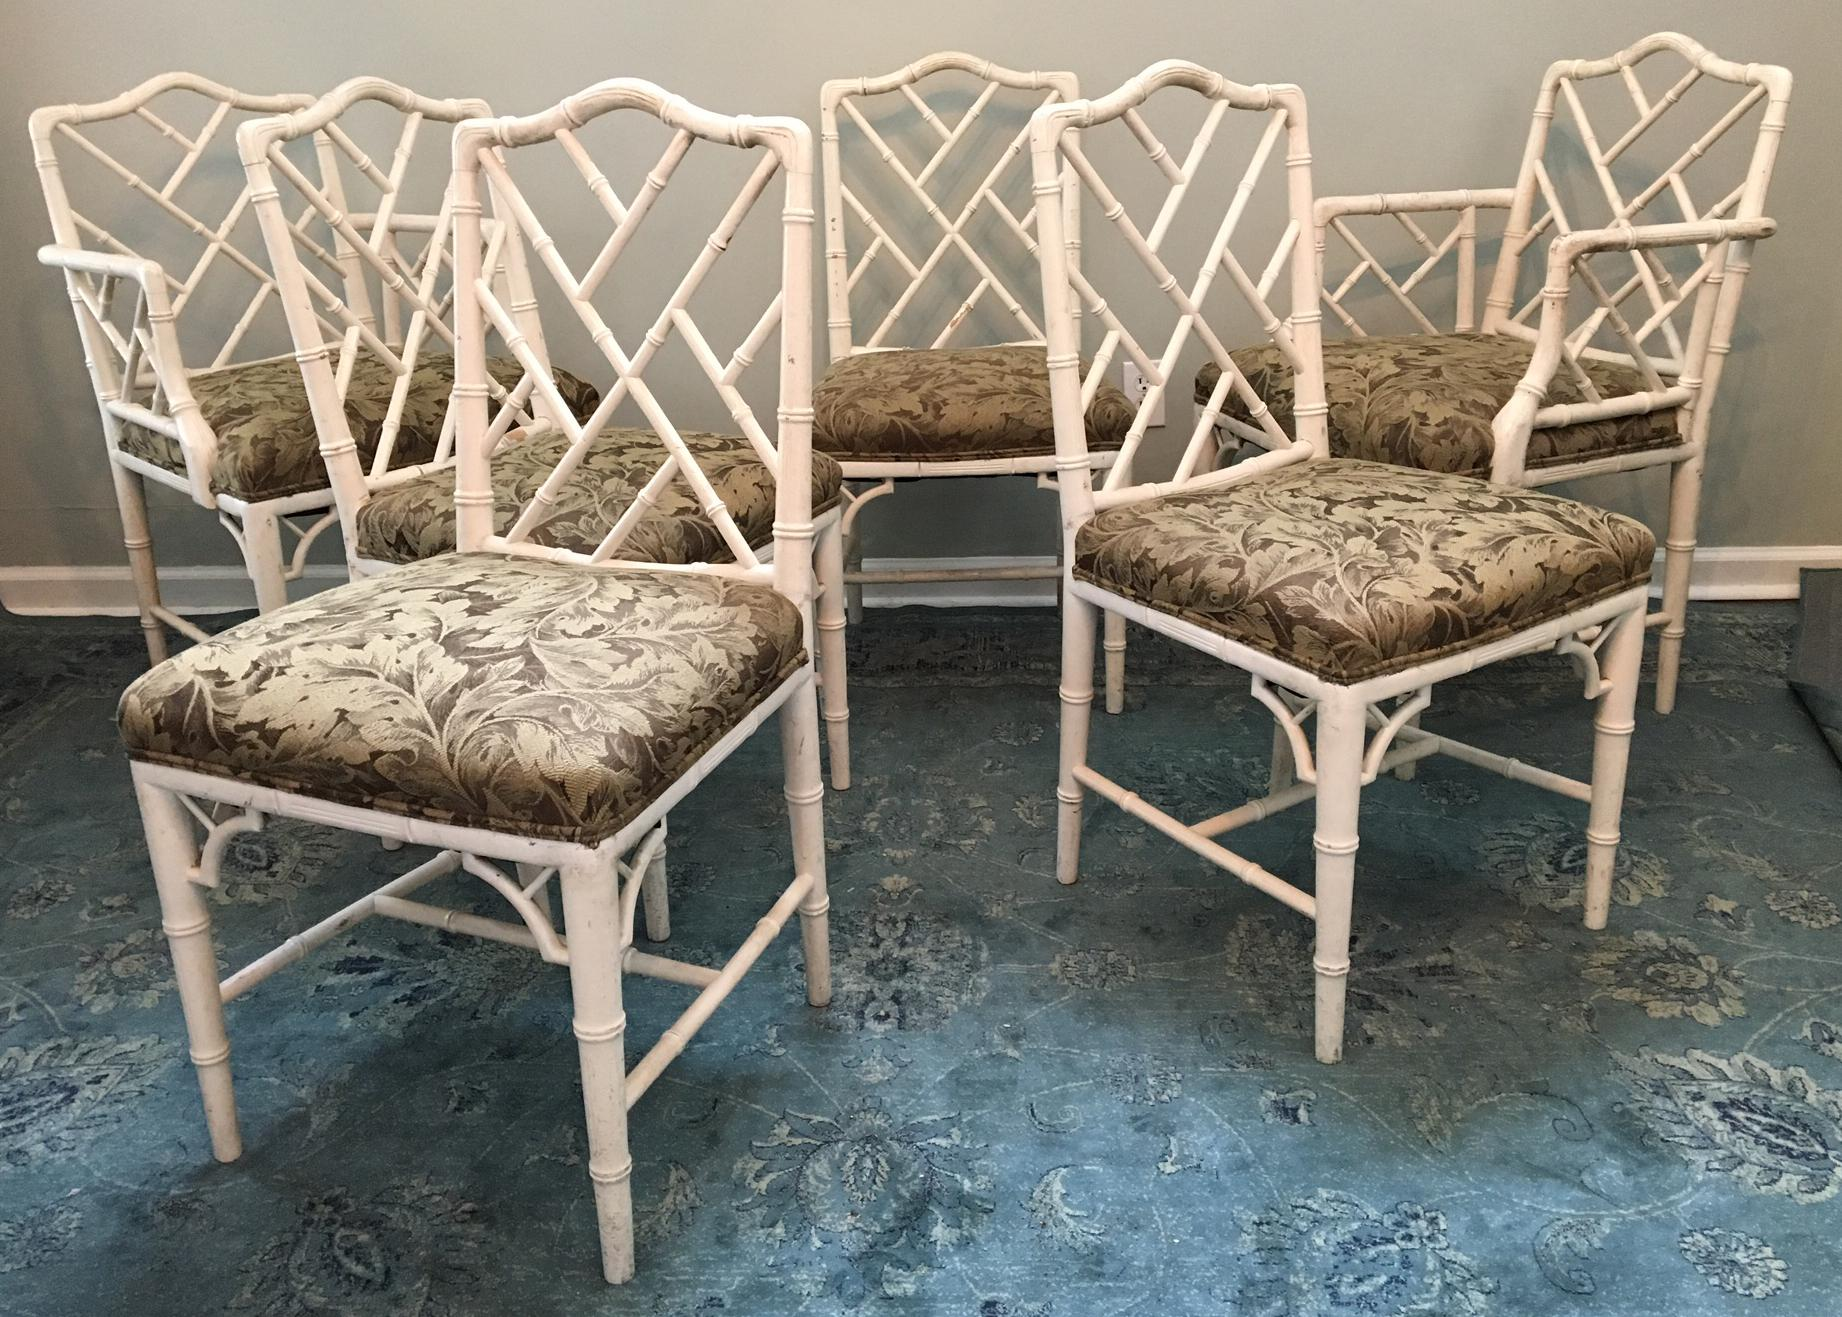 bamboo dining chairs. Set Of 6 Faux Bamboo Dining Chairs In The Iconic Asian Chippendale Style. 4 Side D